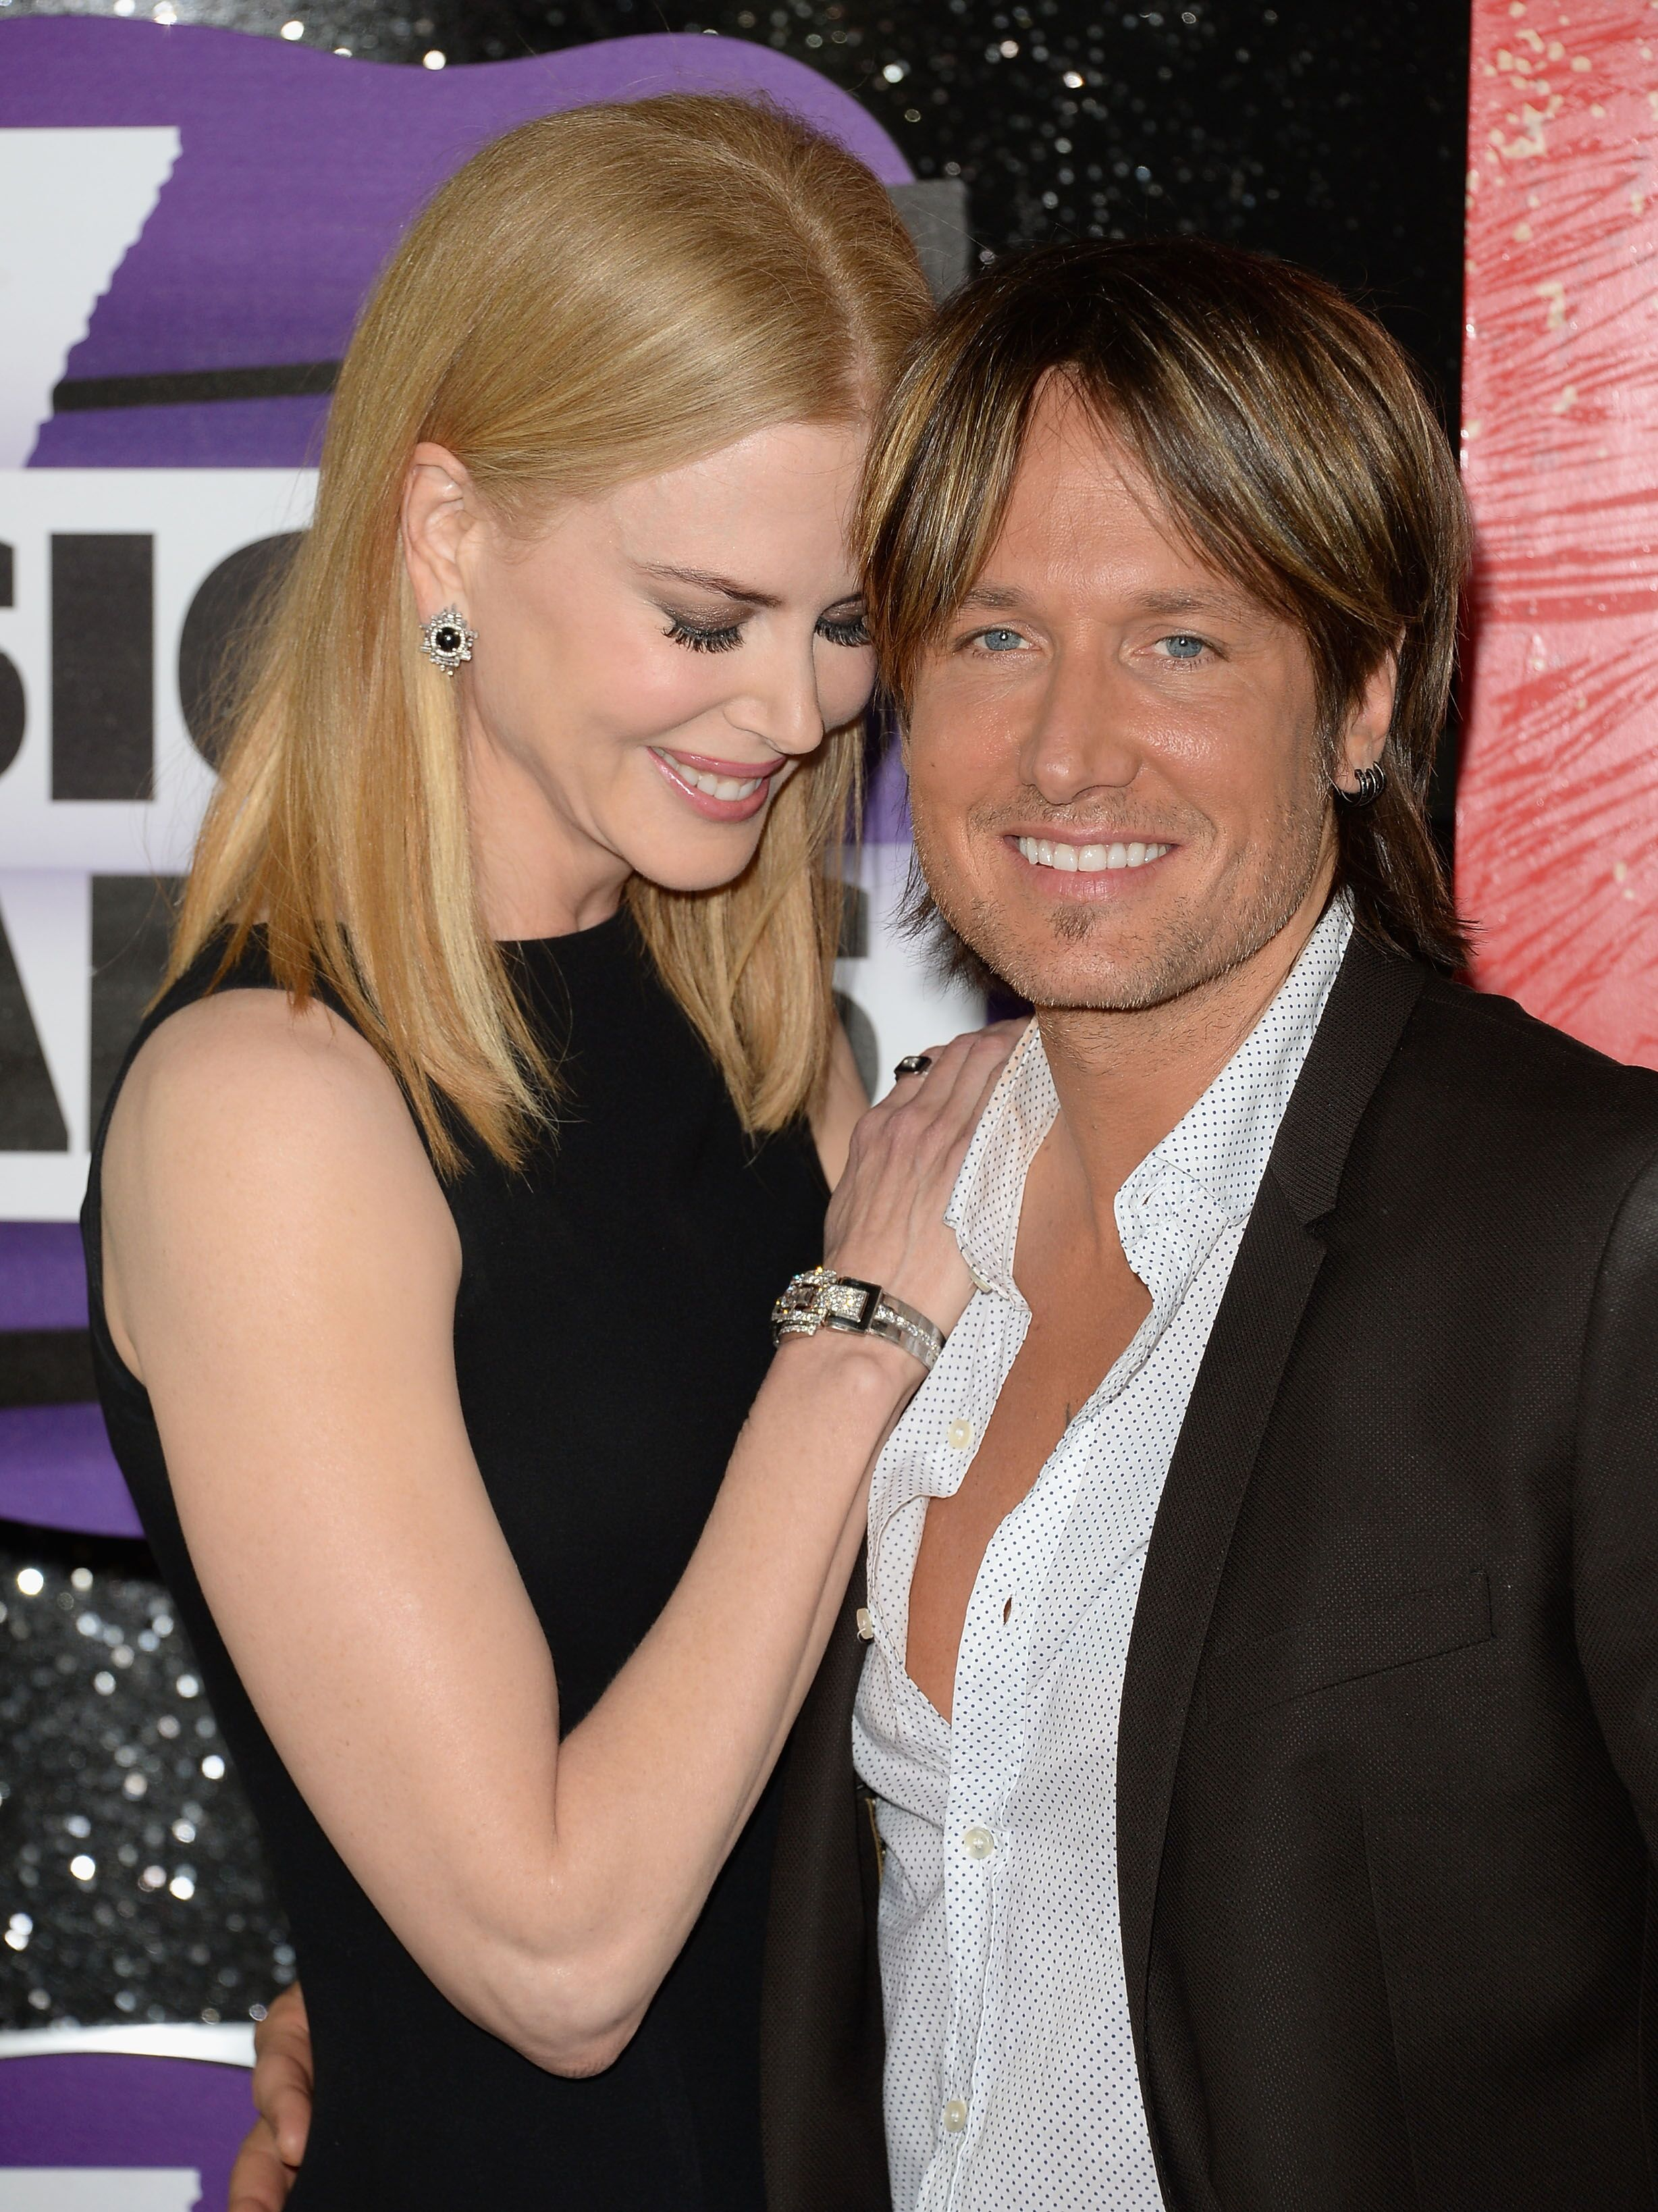 Nicole Kidman and Keith Urban attend the CMT Music Awards. | Source: Getty Images